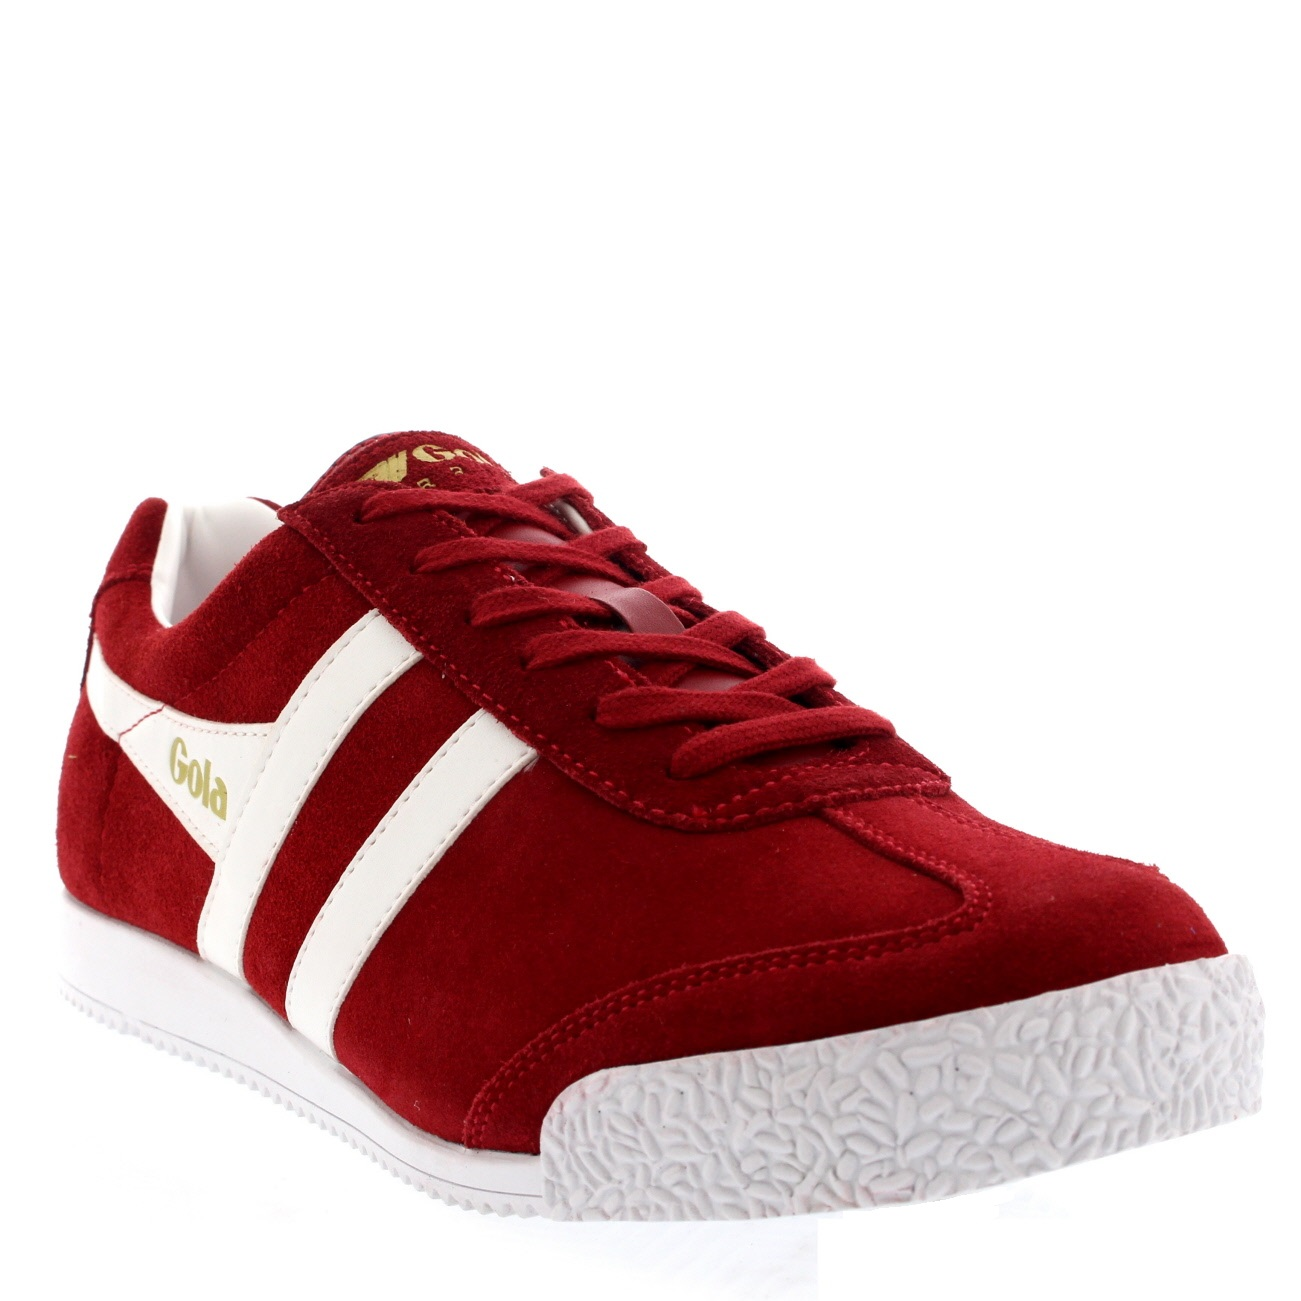 Uomo Gola Active Super Harrier Retro Casual Active Gola Suede Lace Up Sports Sneaker US 8-13 643252